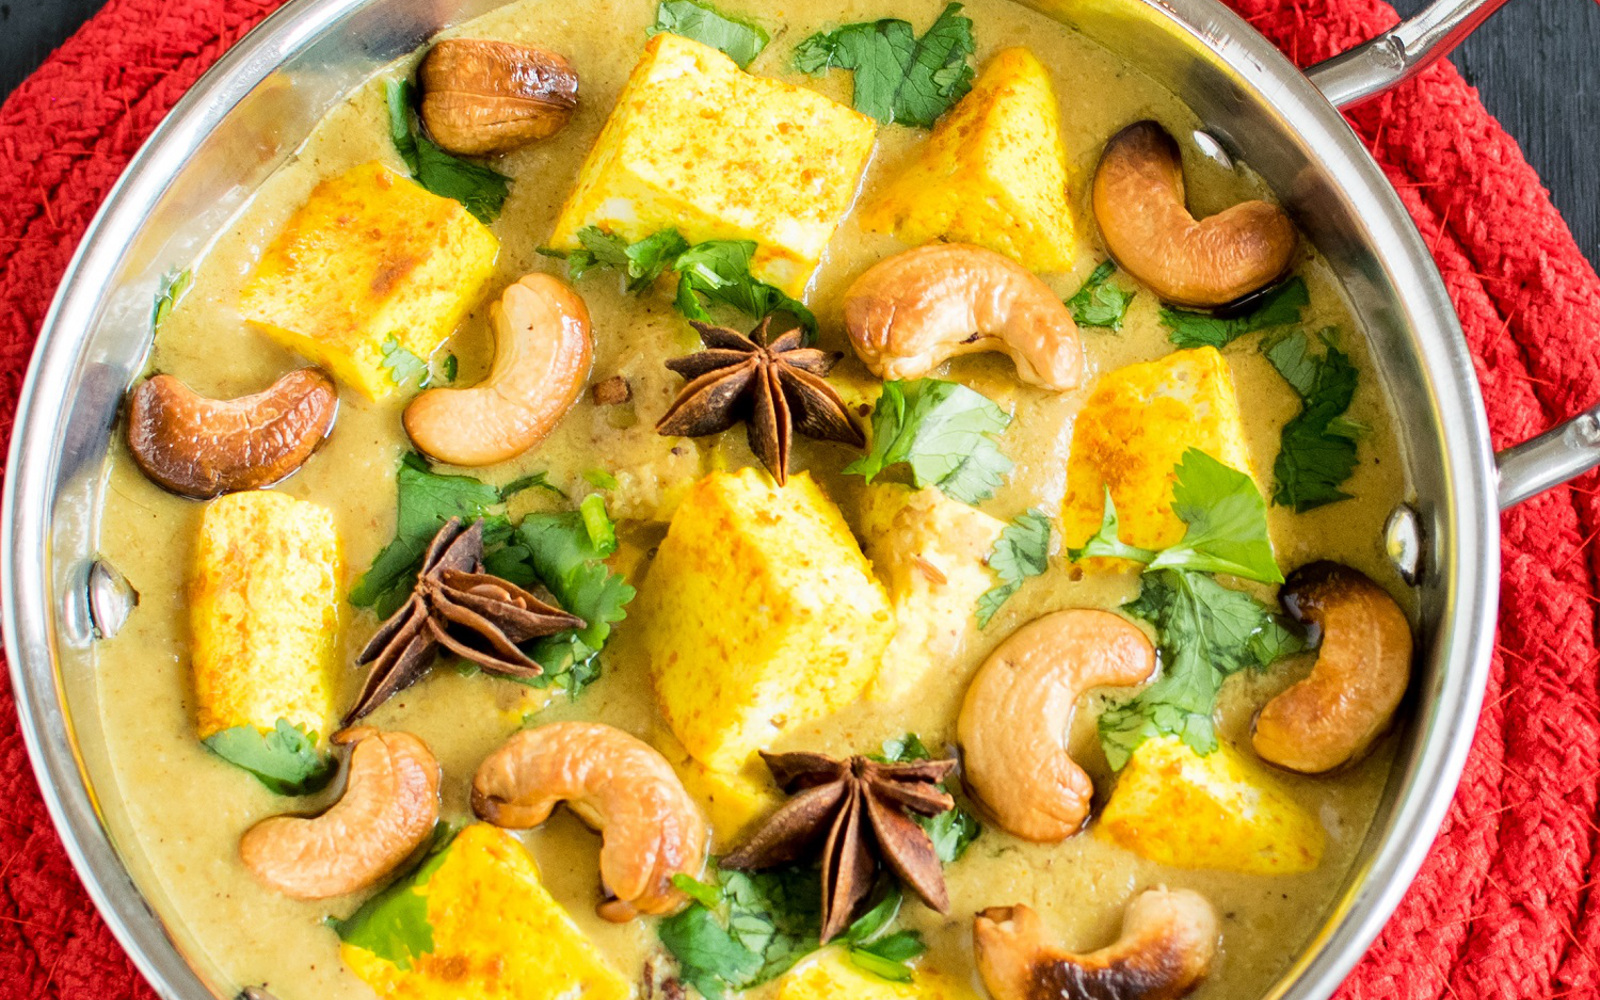 Vegan Turmeric Tofu Cashew Curry